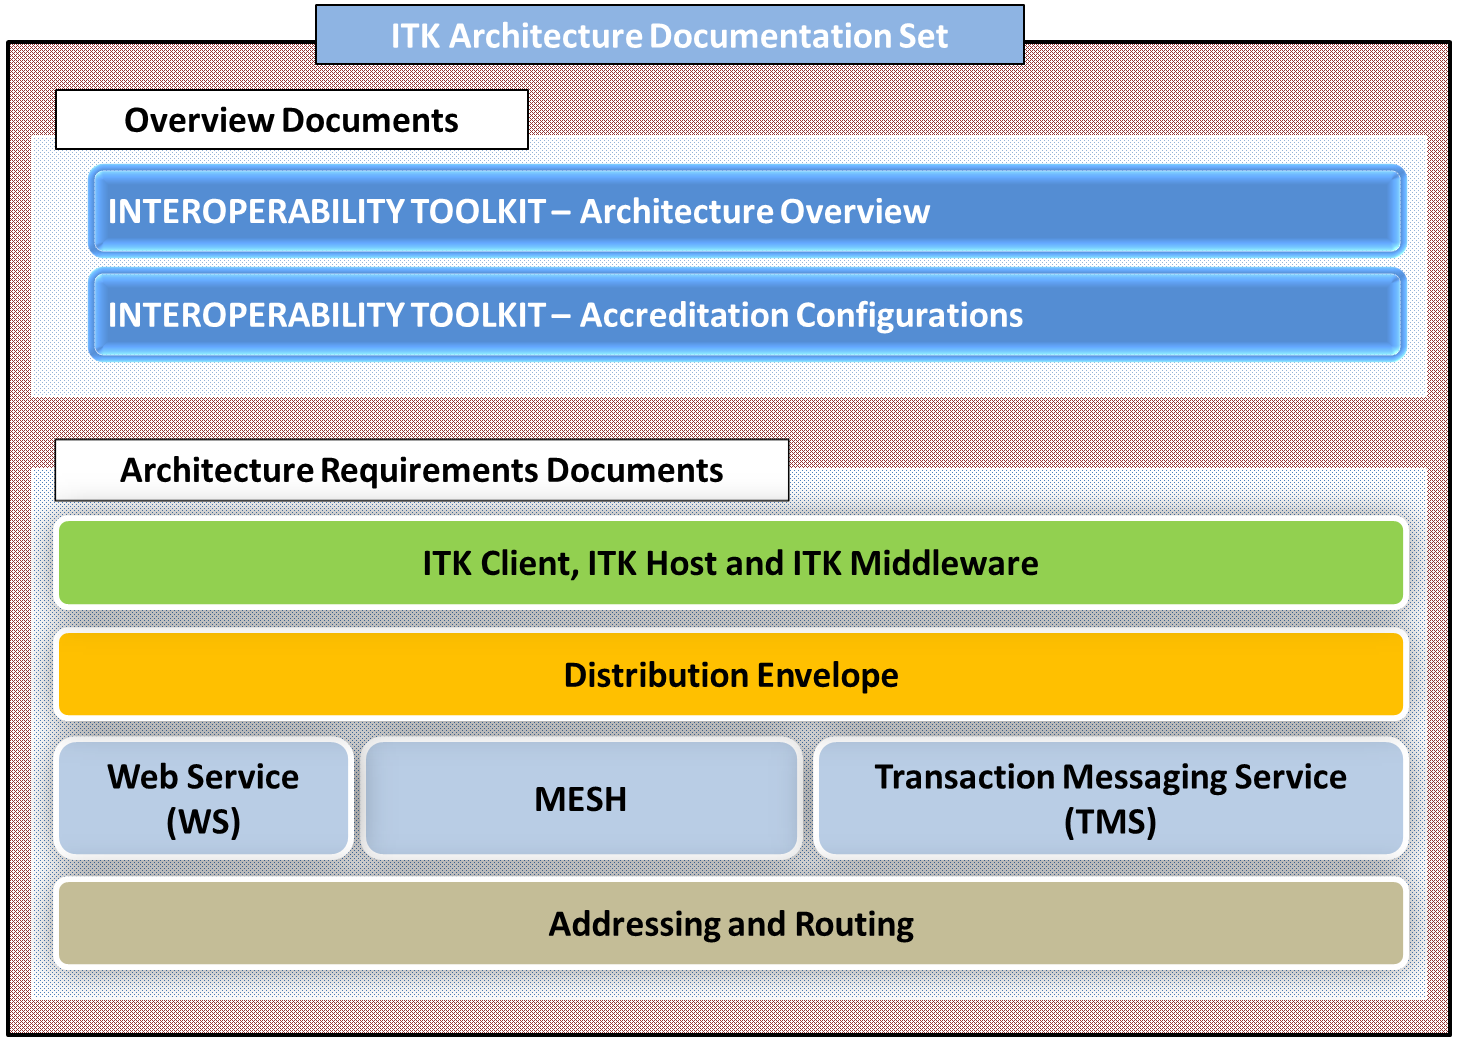 ITK 2.2 architecture documentation set